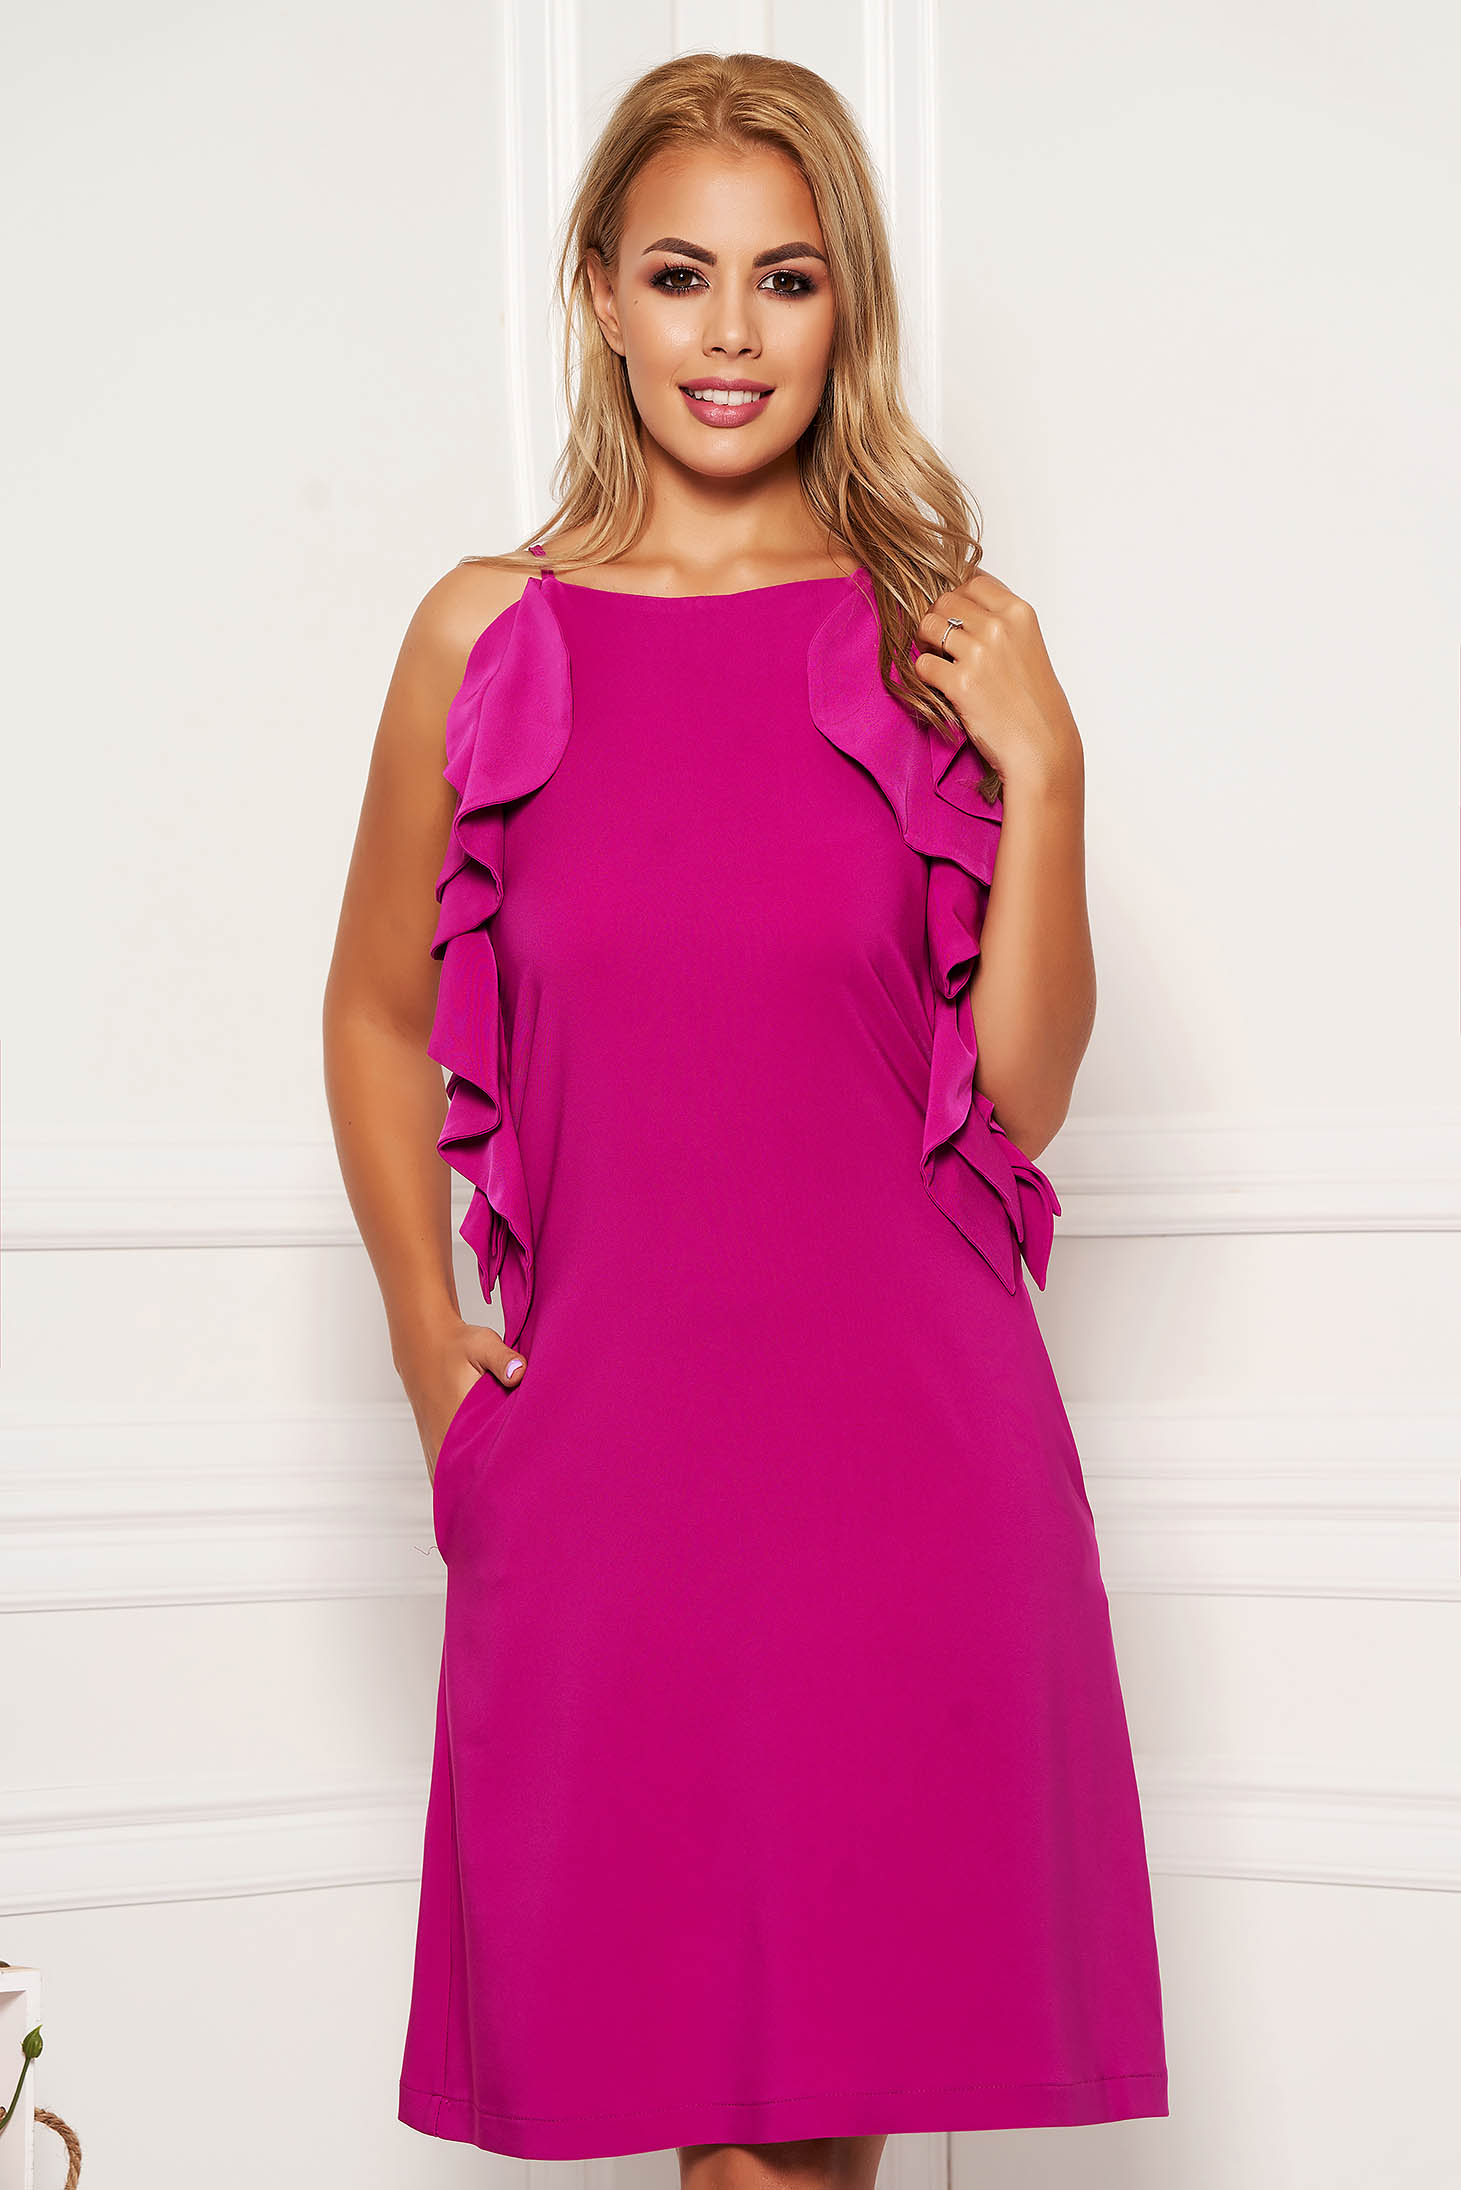 Fuchsia dress daily short cut a-line with pockets with ruffle details with rounded cleavage